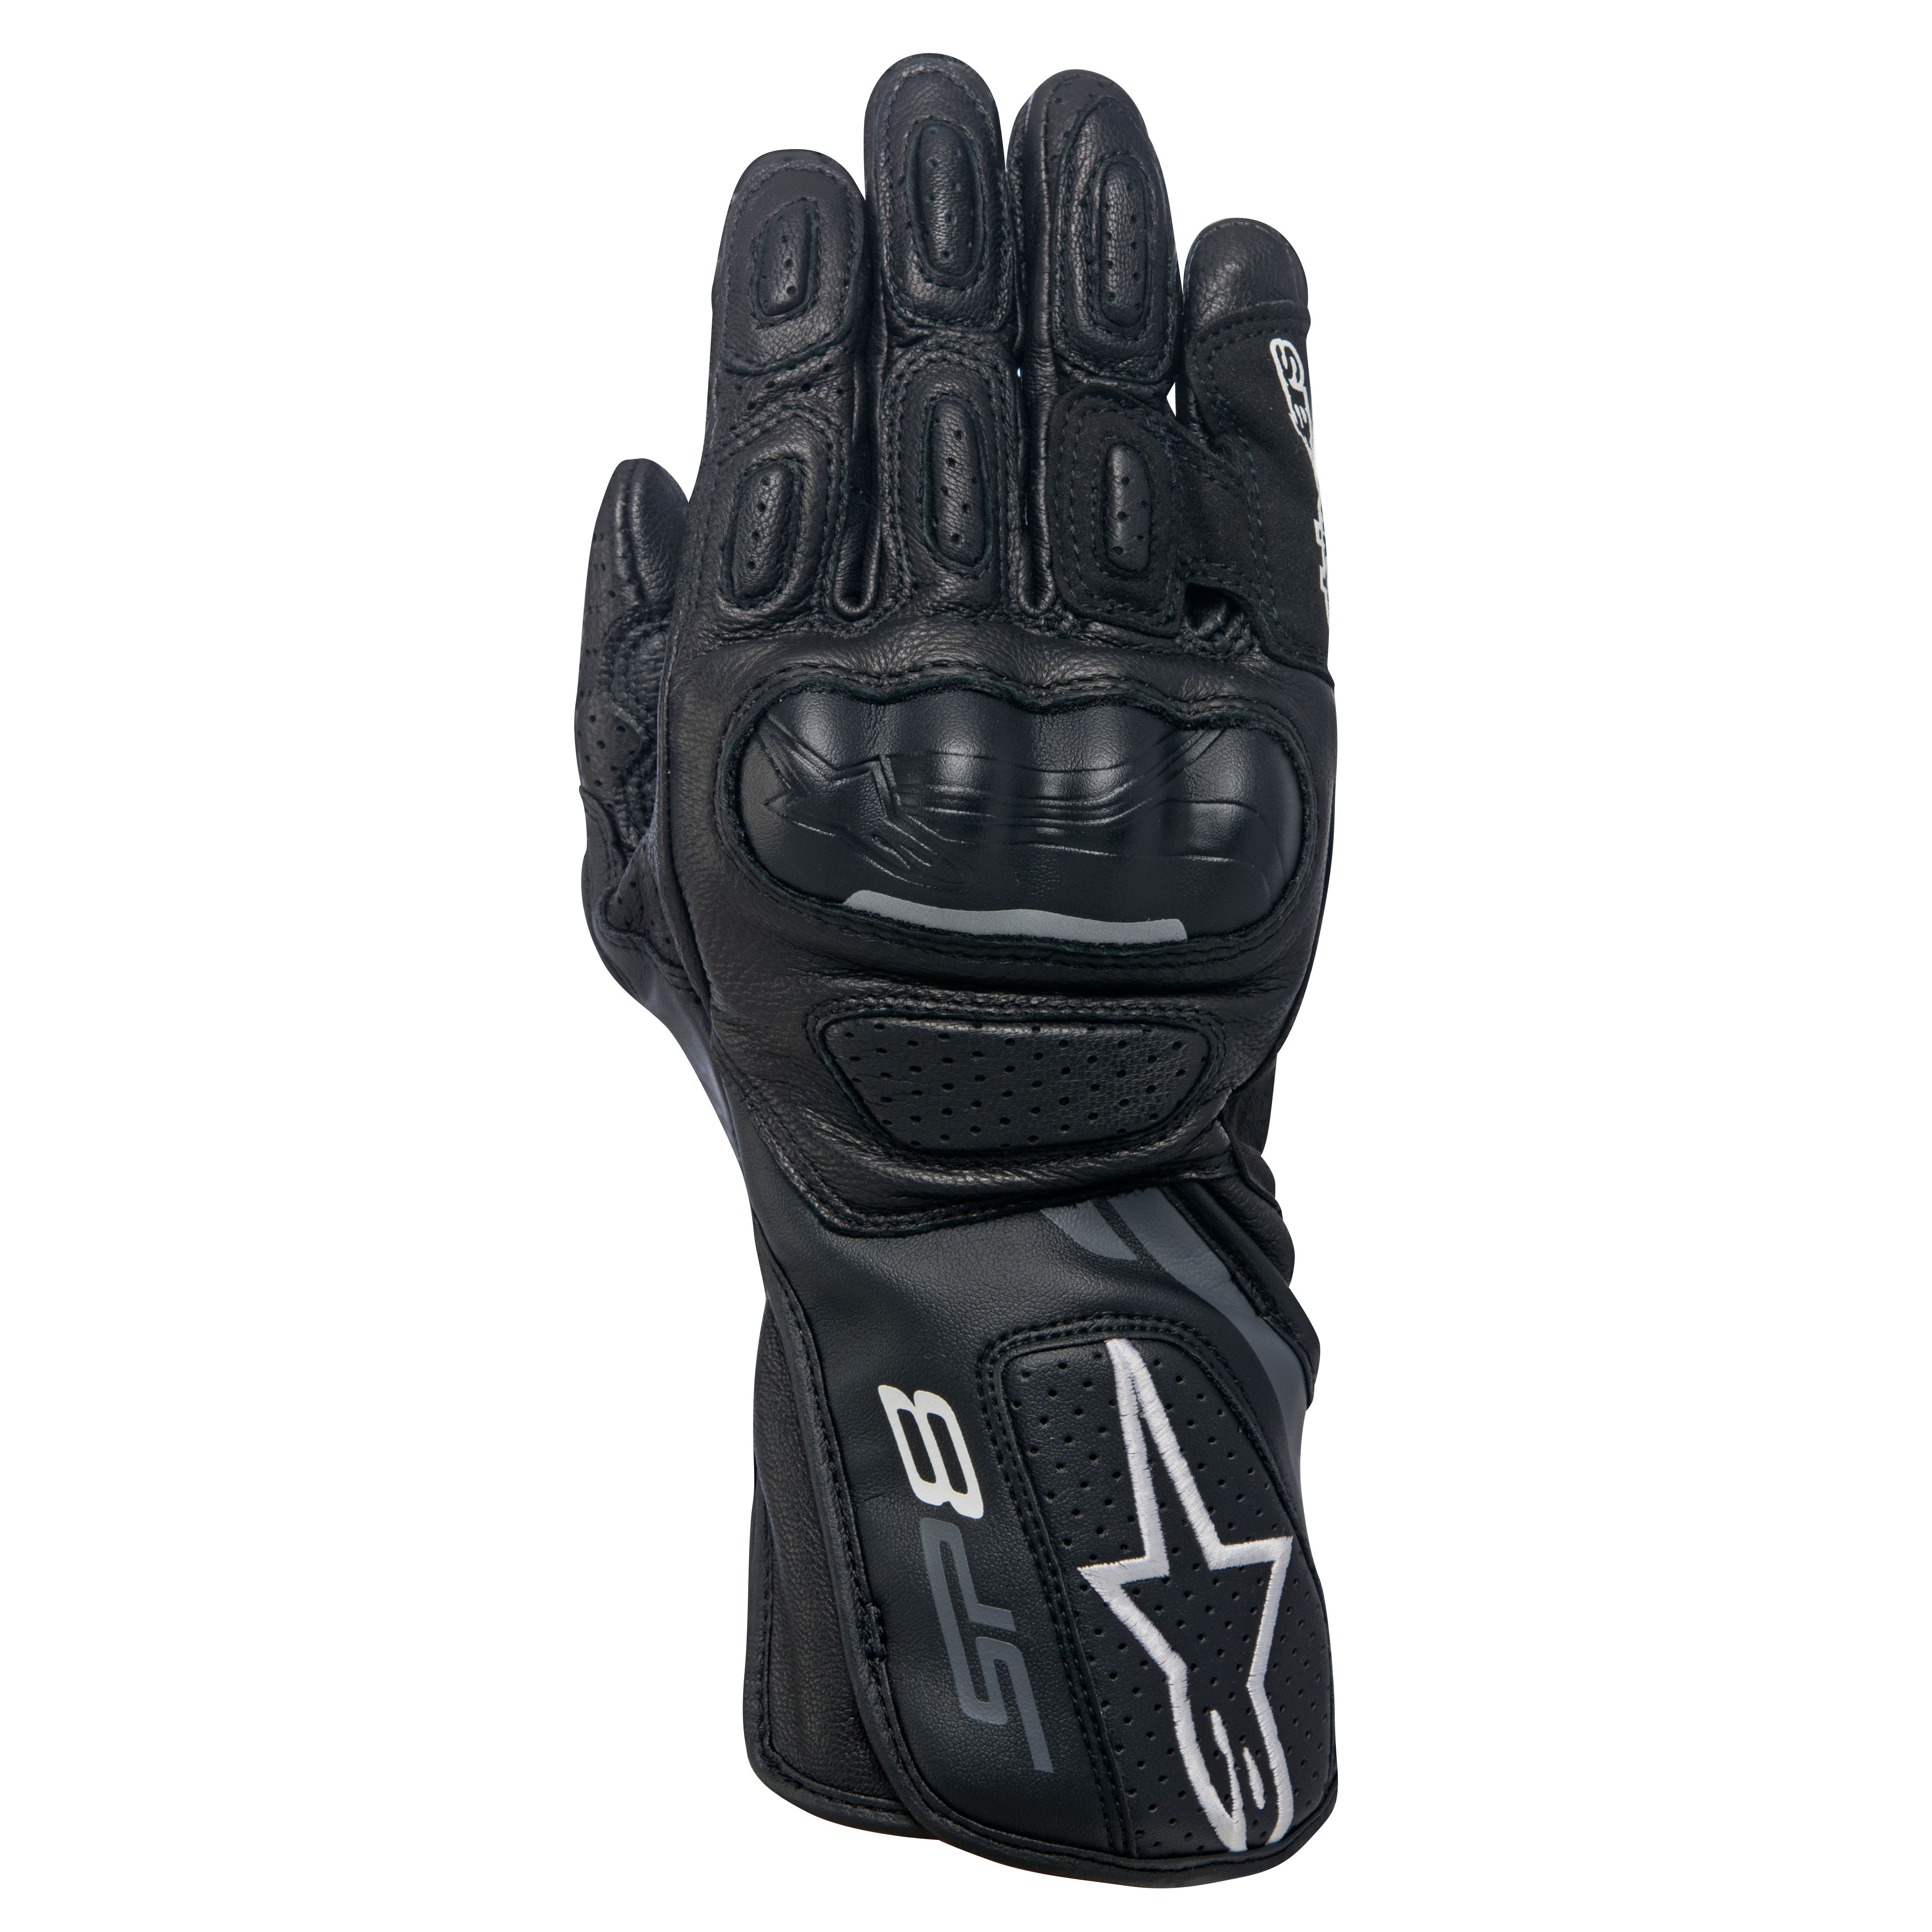 gants alpinestars stella sp 8 v2 gants moto. Black Bedroom Furniture Sets. Home Design Ideas